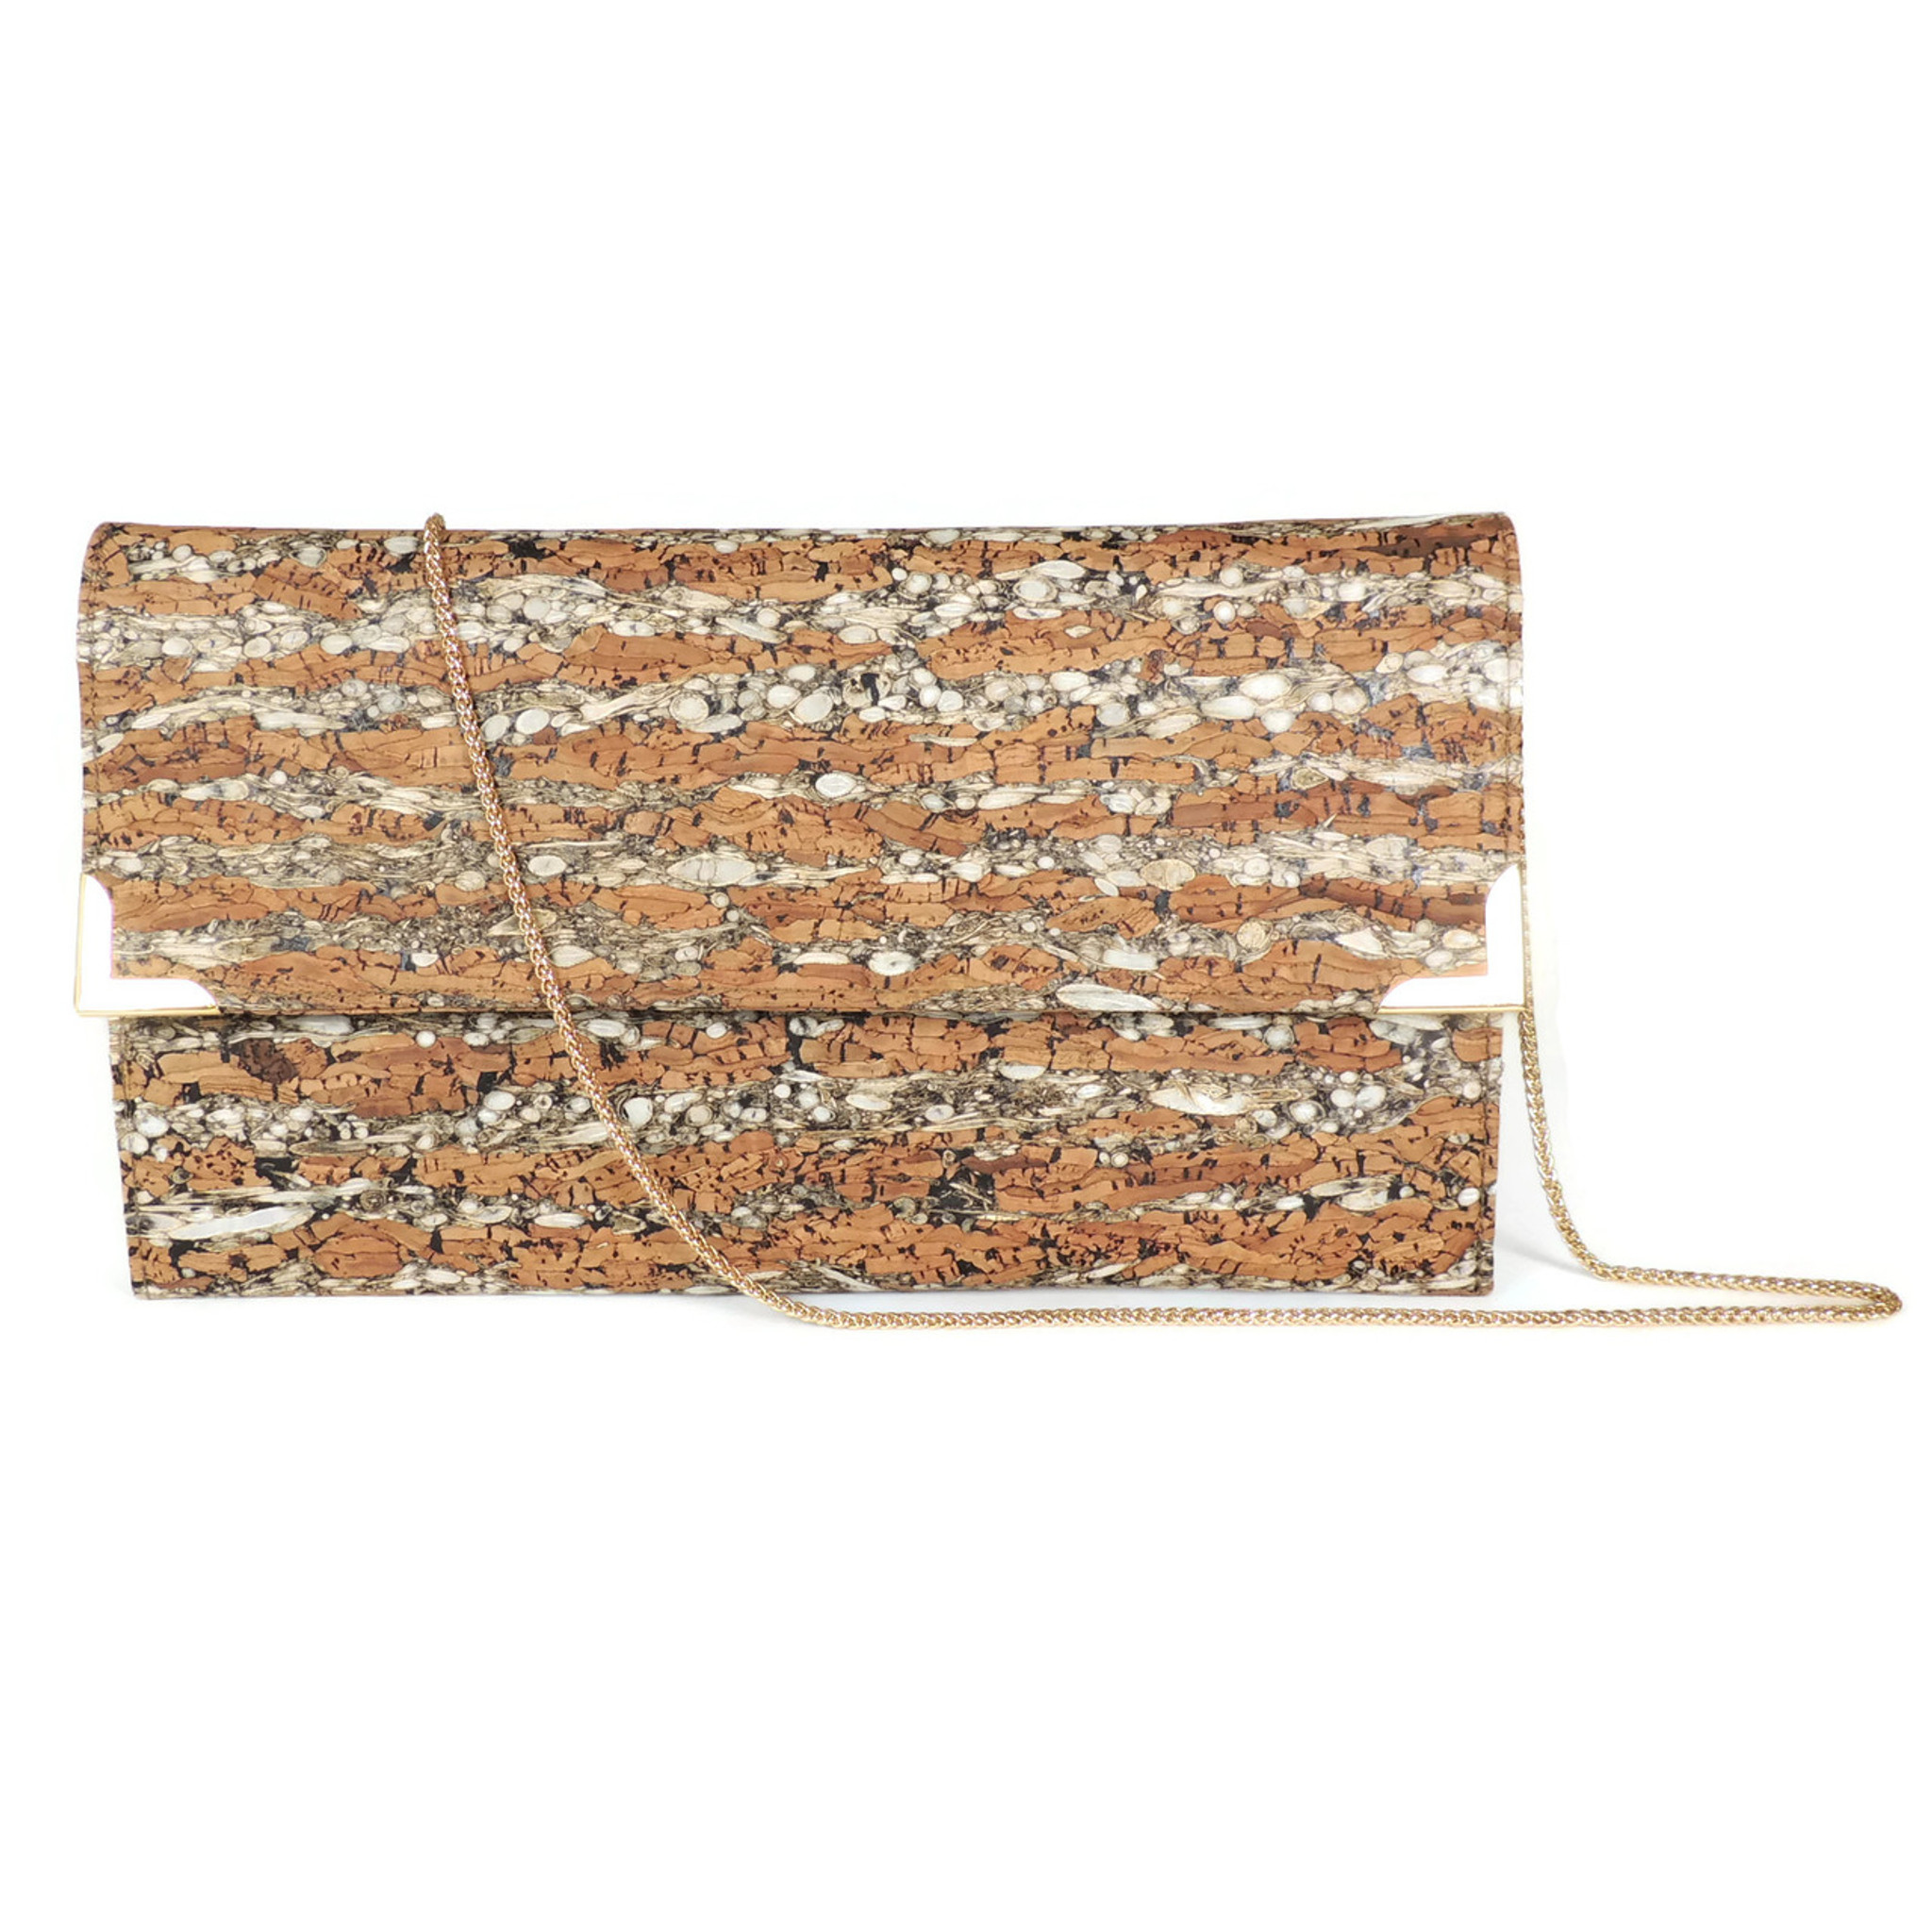 Folio Clutch in Fennel Cork